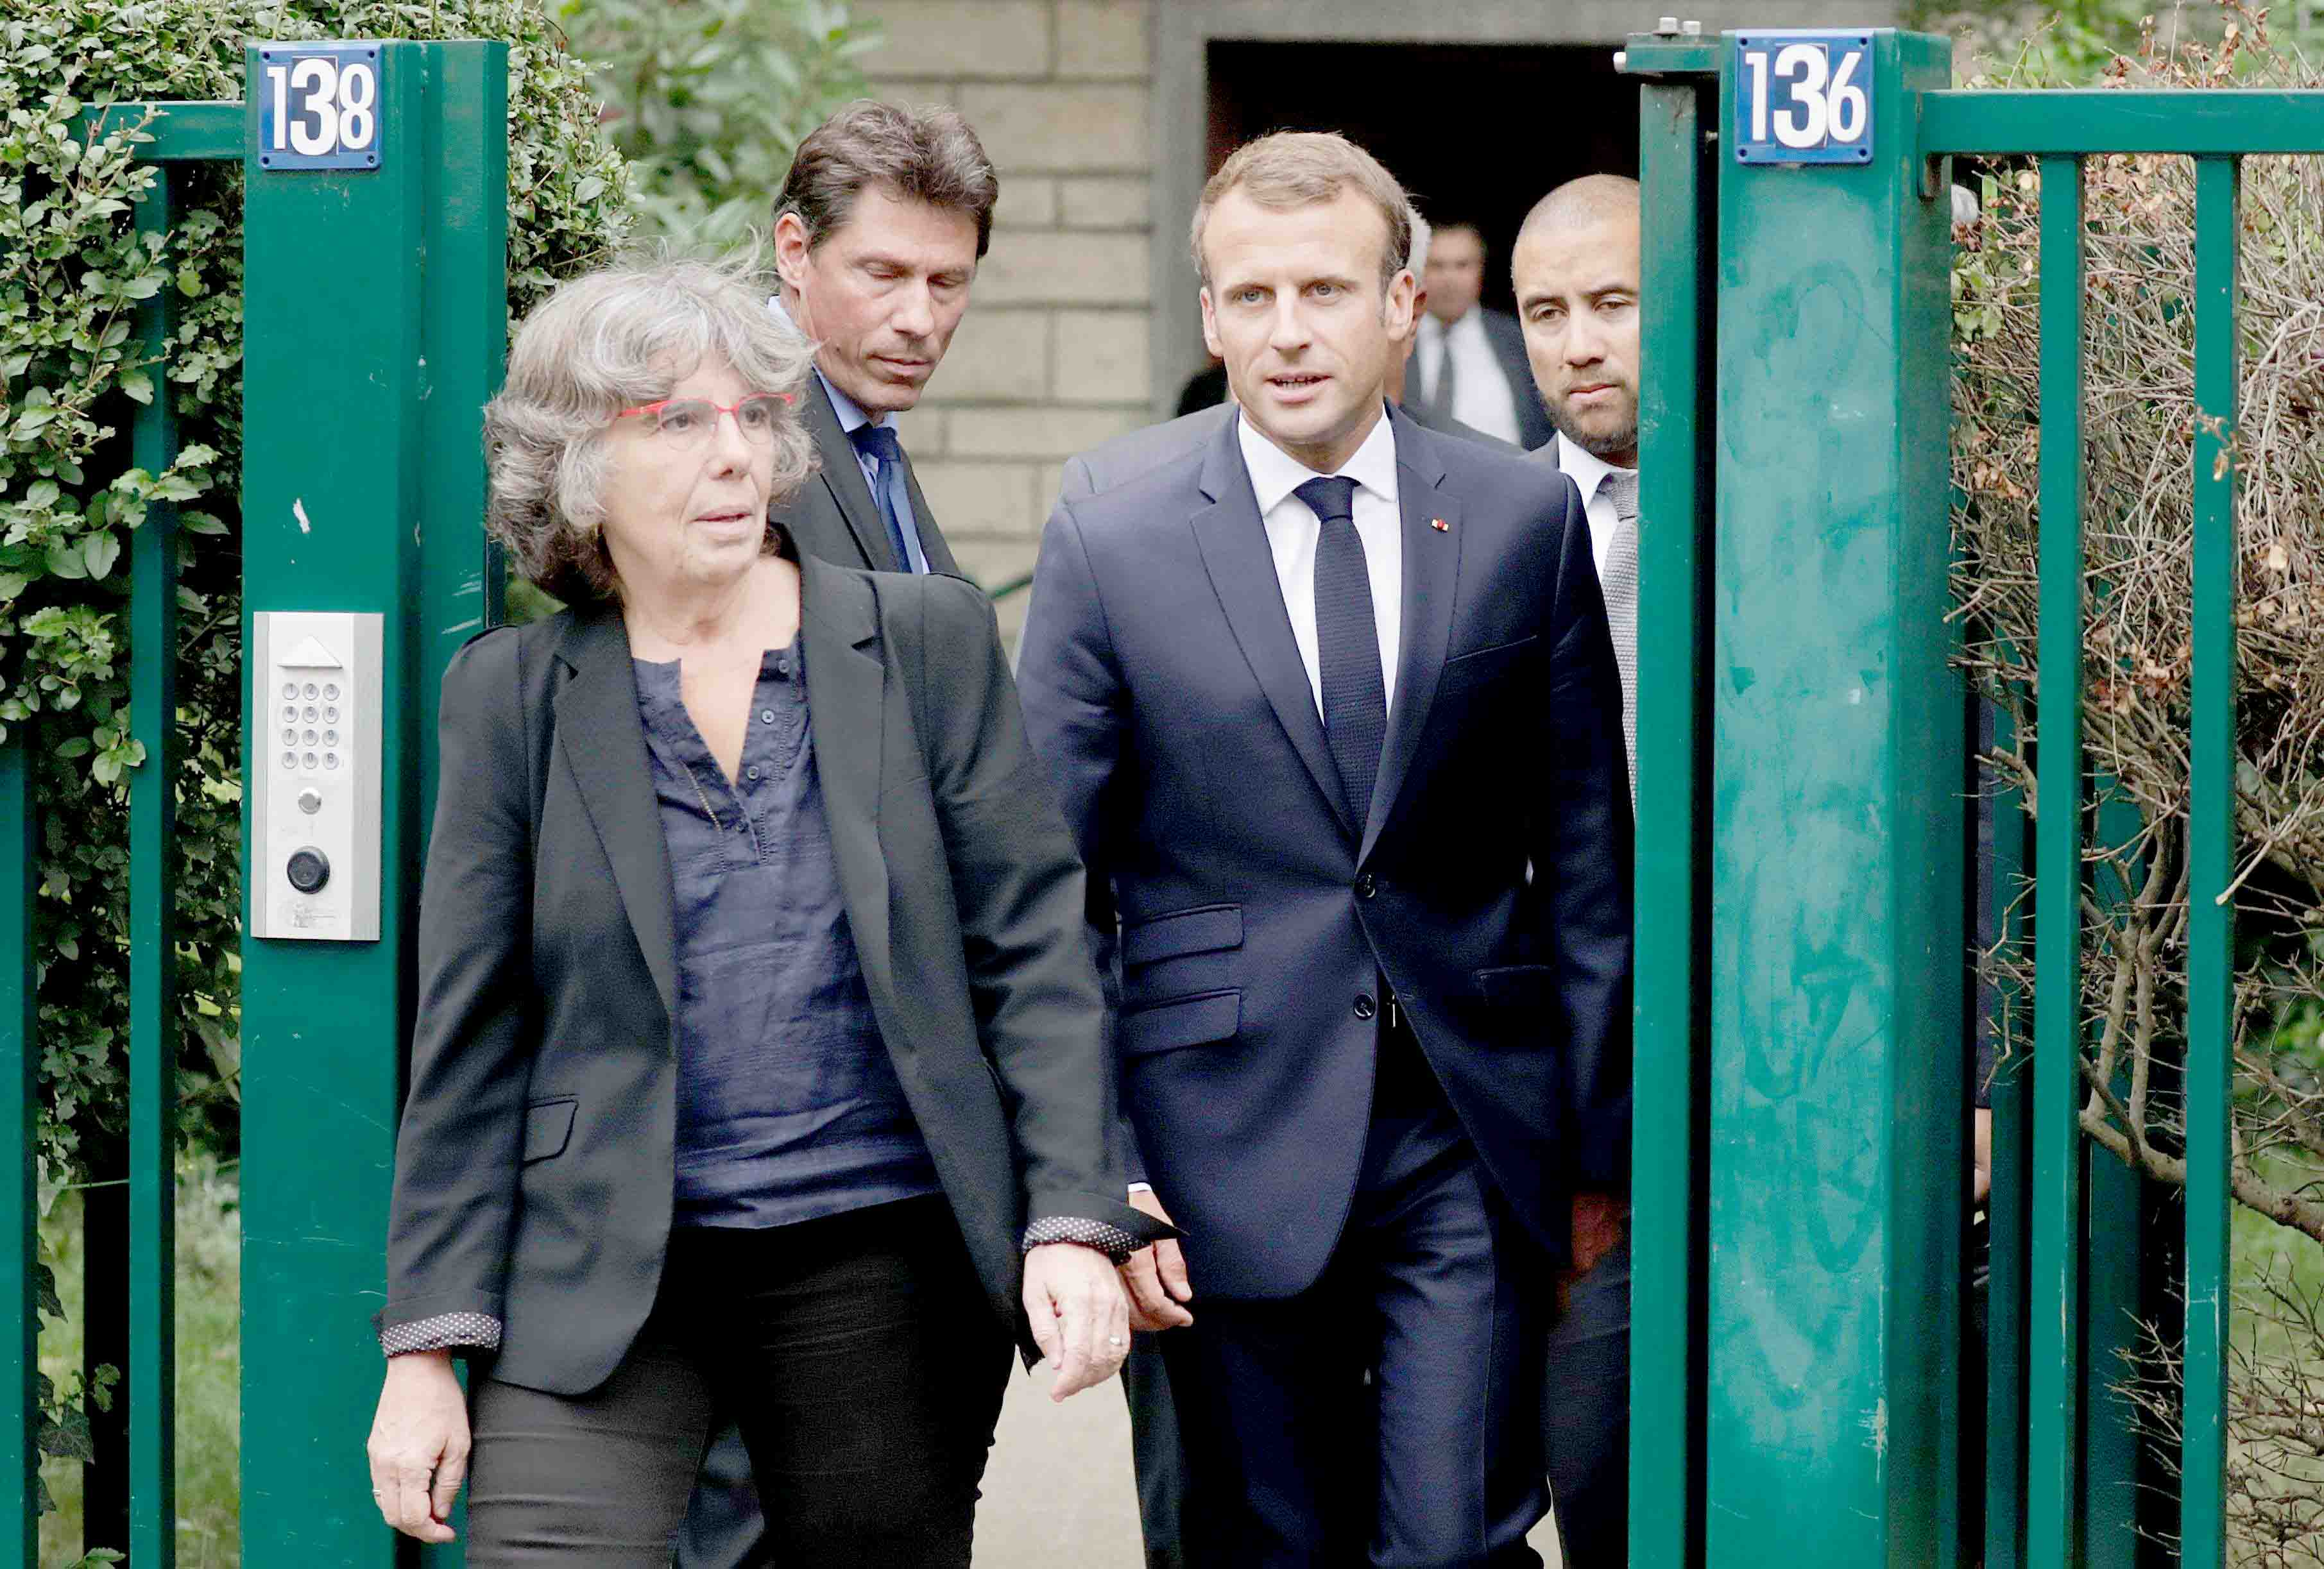 French President Emmanuel Macron (C) walks next to Michele Audin, daughter of late Maurice Audin, as he leaves the home of Josette Audin, widow of Audin in Bagnolet, on September 13. (AFP)